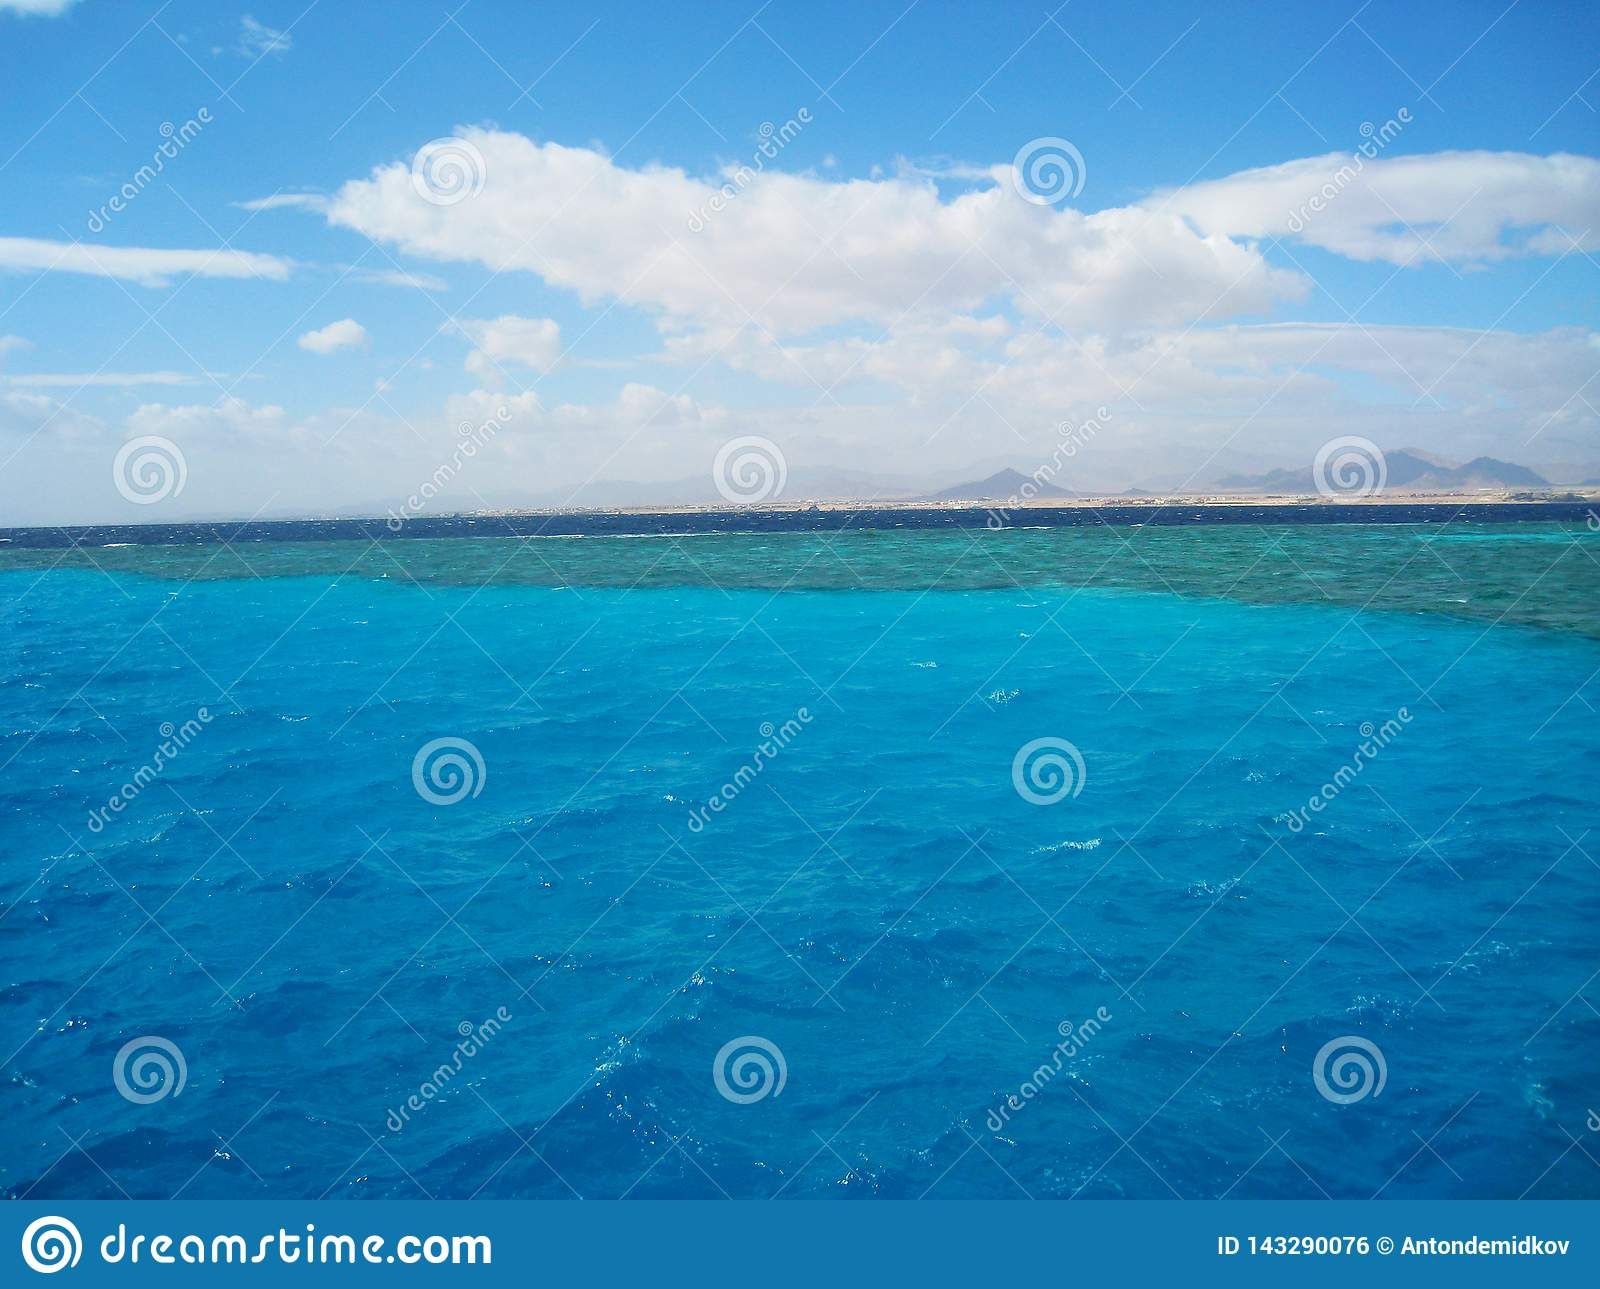 Place of mixing the waters of the Red Sea. Sinai, Egypt